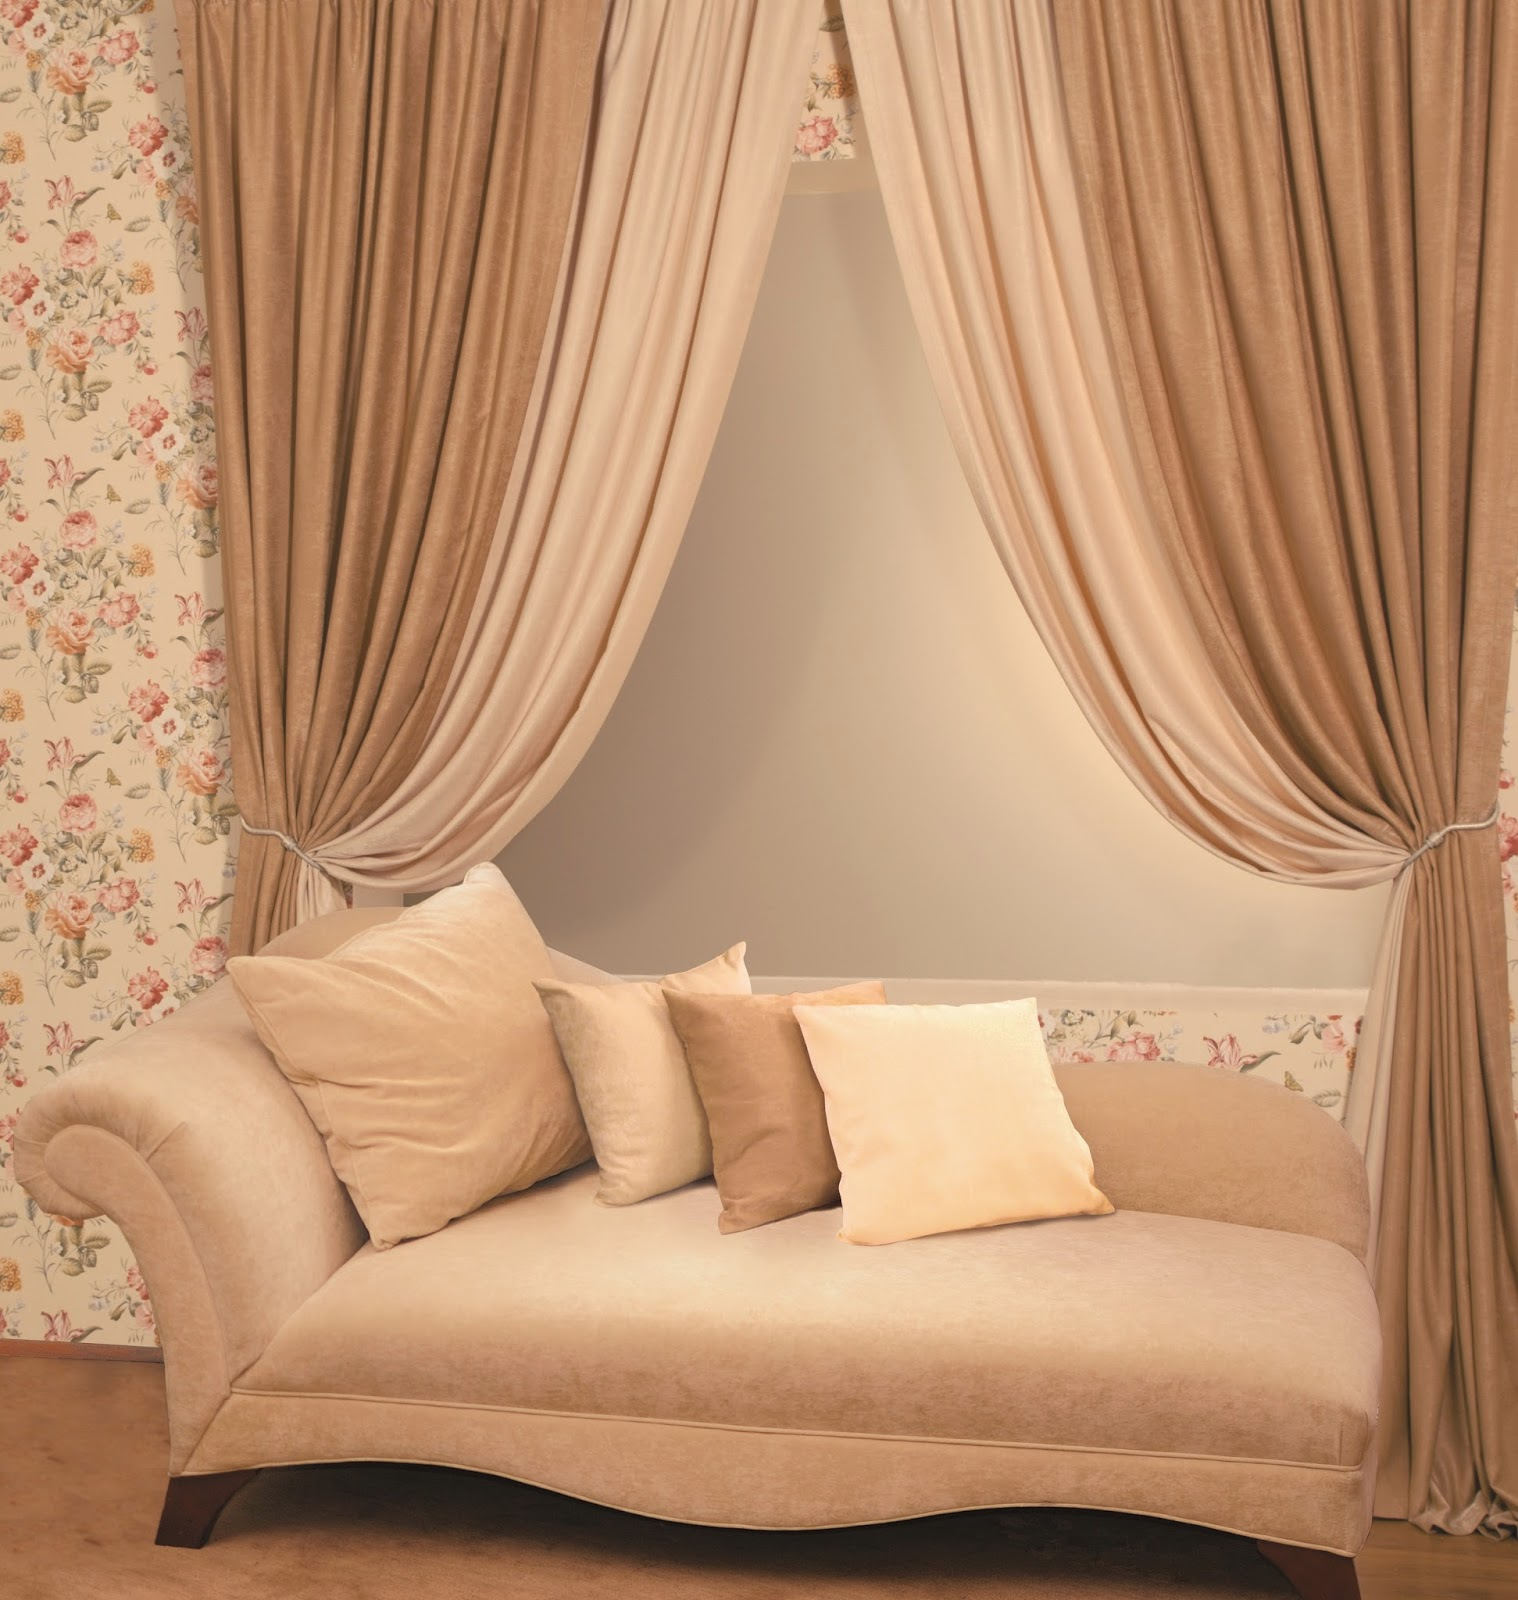 Classic curtain designs for living room - Curtains Classic Style Ideas Curtains Classic Designs Curtains Classic Living Room Classic Curtains